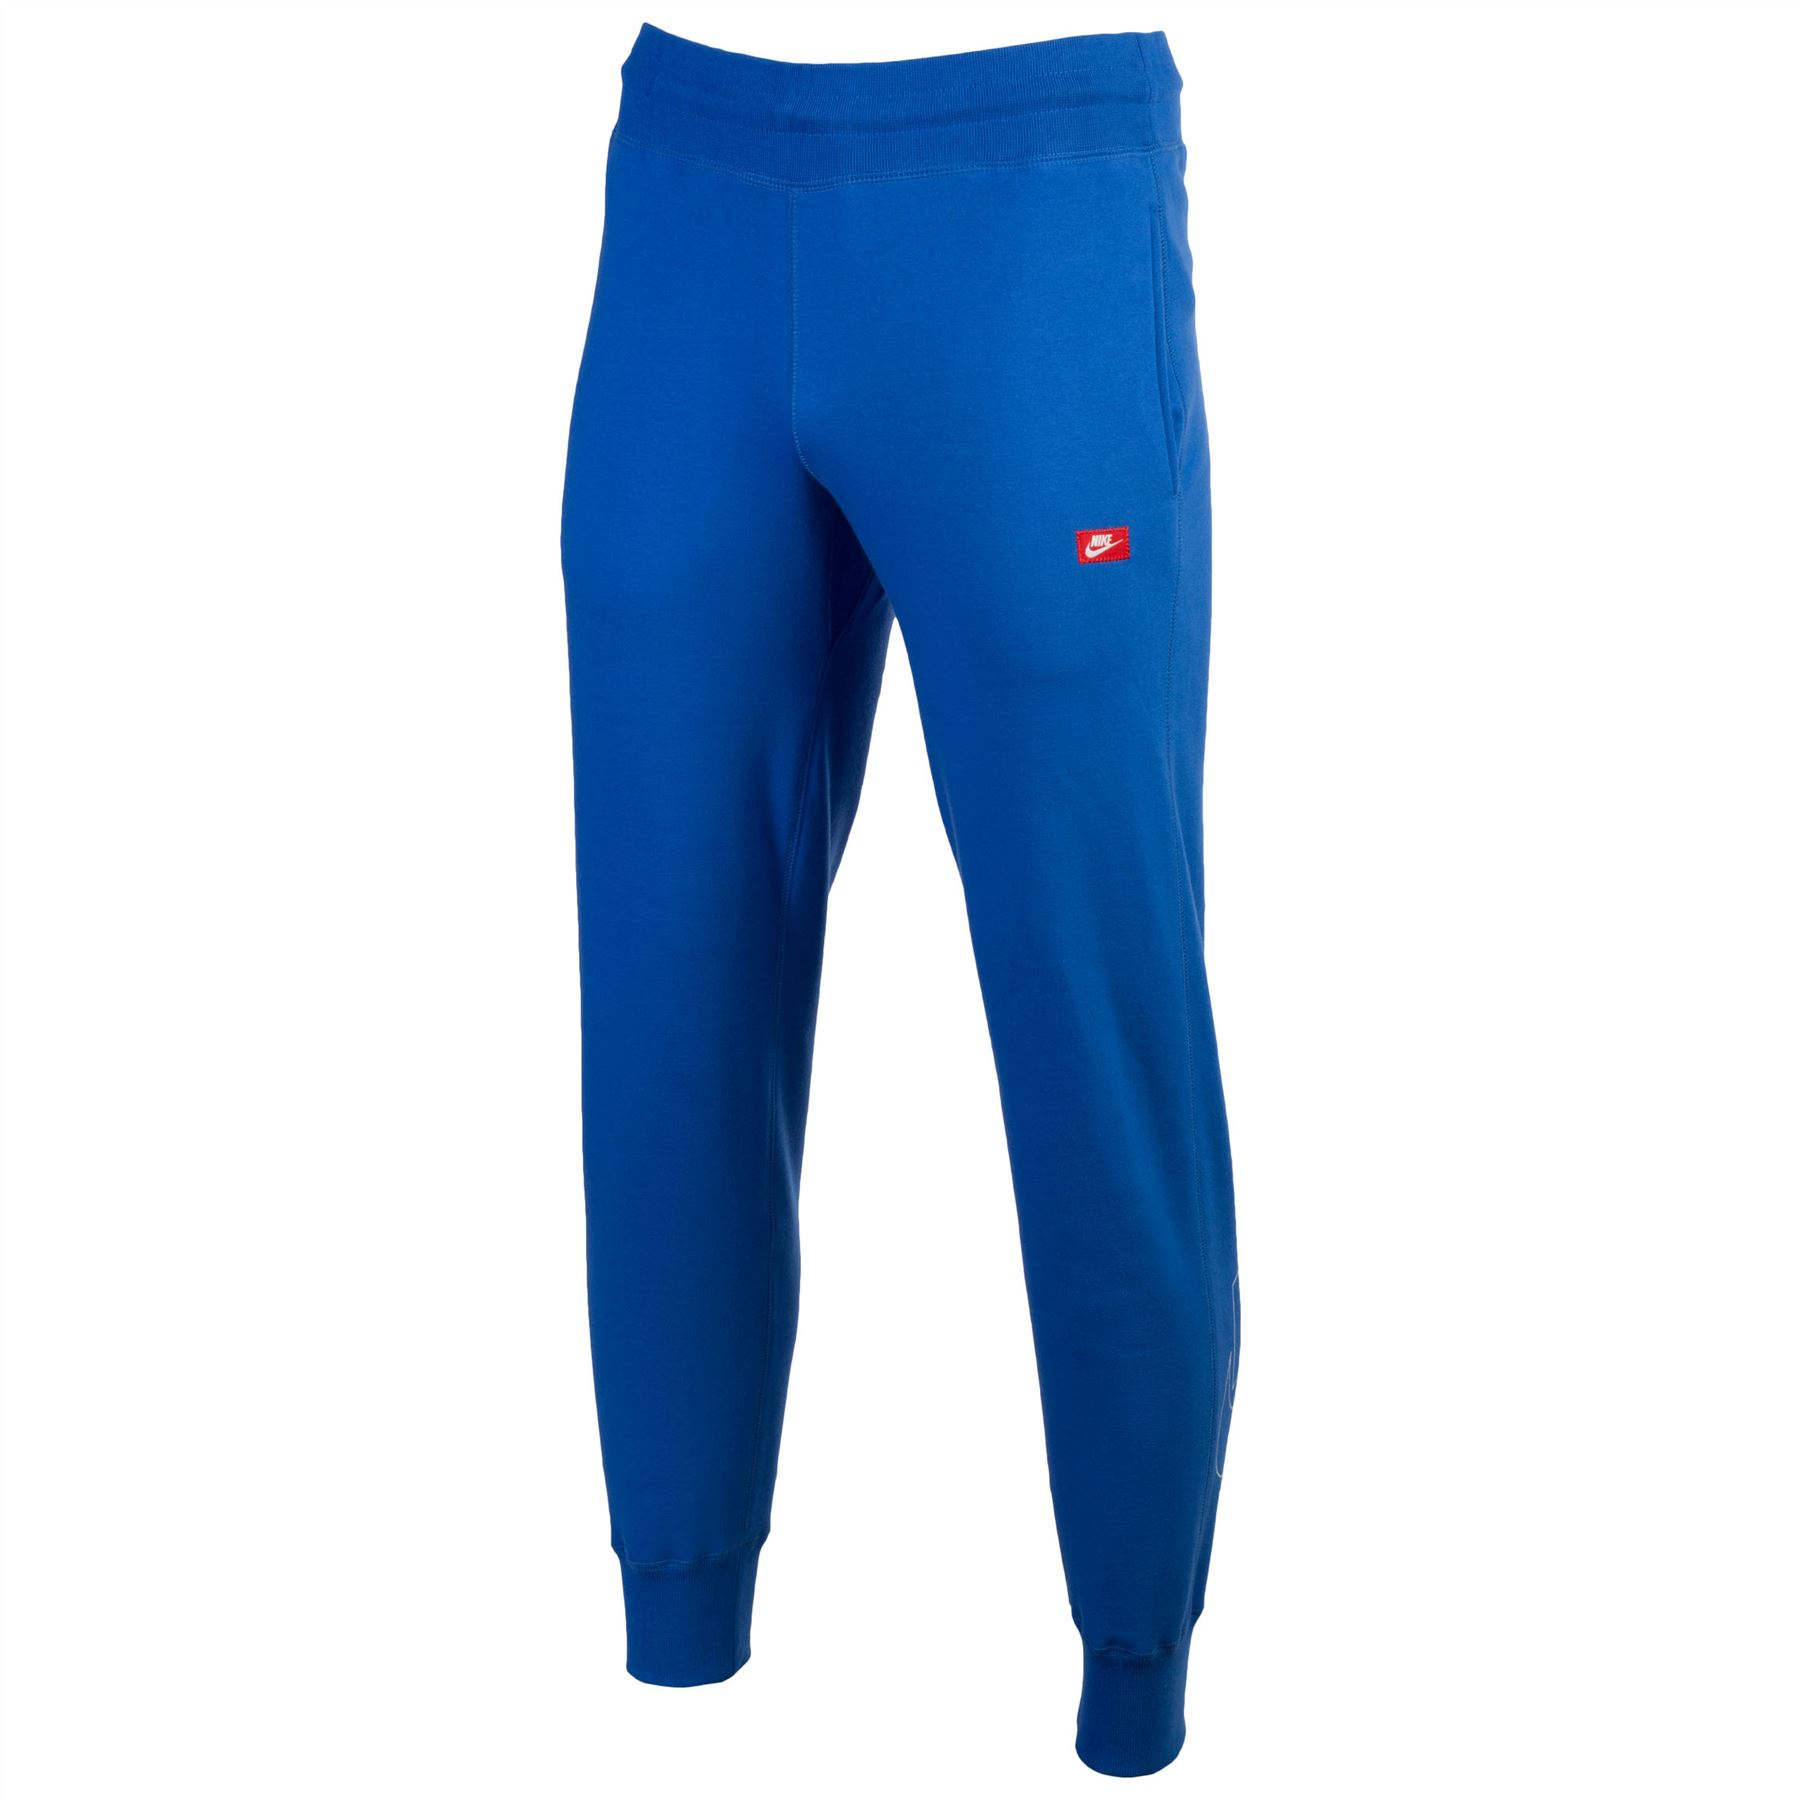 NIKE Mens New Fleece Cuffed Jogging Bottoms Sports Gym Tracksuit Joggers. $ Details about Nike Mens Cuffed Fleece Joggers Pants Gym Running Jog Pants Tracksuit Bottoms. 1 viewed per hour. Nike Mens Cuffed Fleece Joggers Pants Gym Running Jog Pants Tracksuit Bottoms. Item Information. Condition: New with tags.